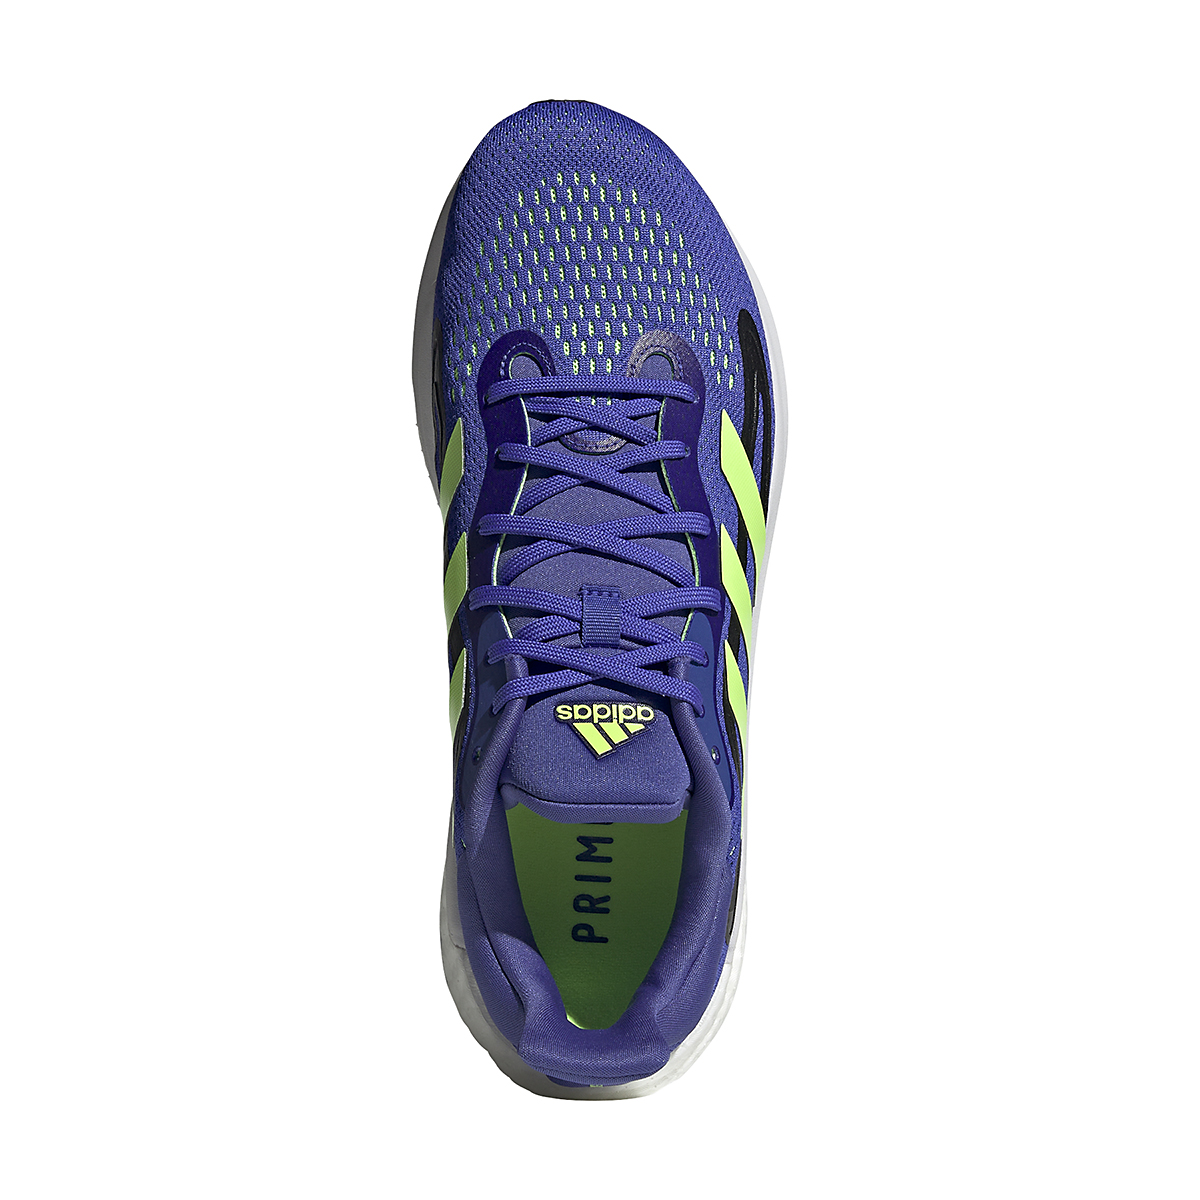 Men's Adidas SolarGlide 4 Running Shoe - Color: Sonic Ink/Signal Green/Core Black - Size: 6.5 - Width: Regular, Sonic Ink/Signal Green/Core Black, large, image 6